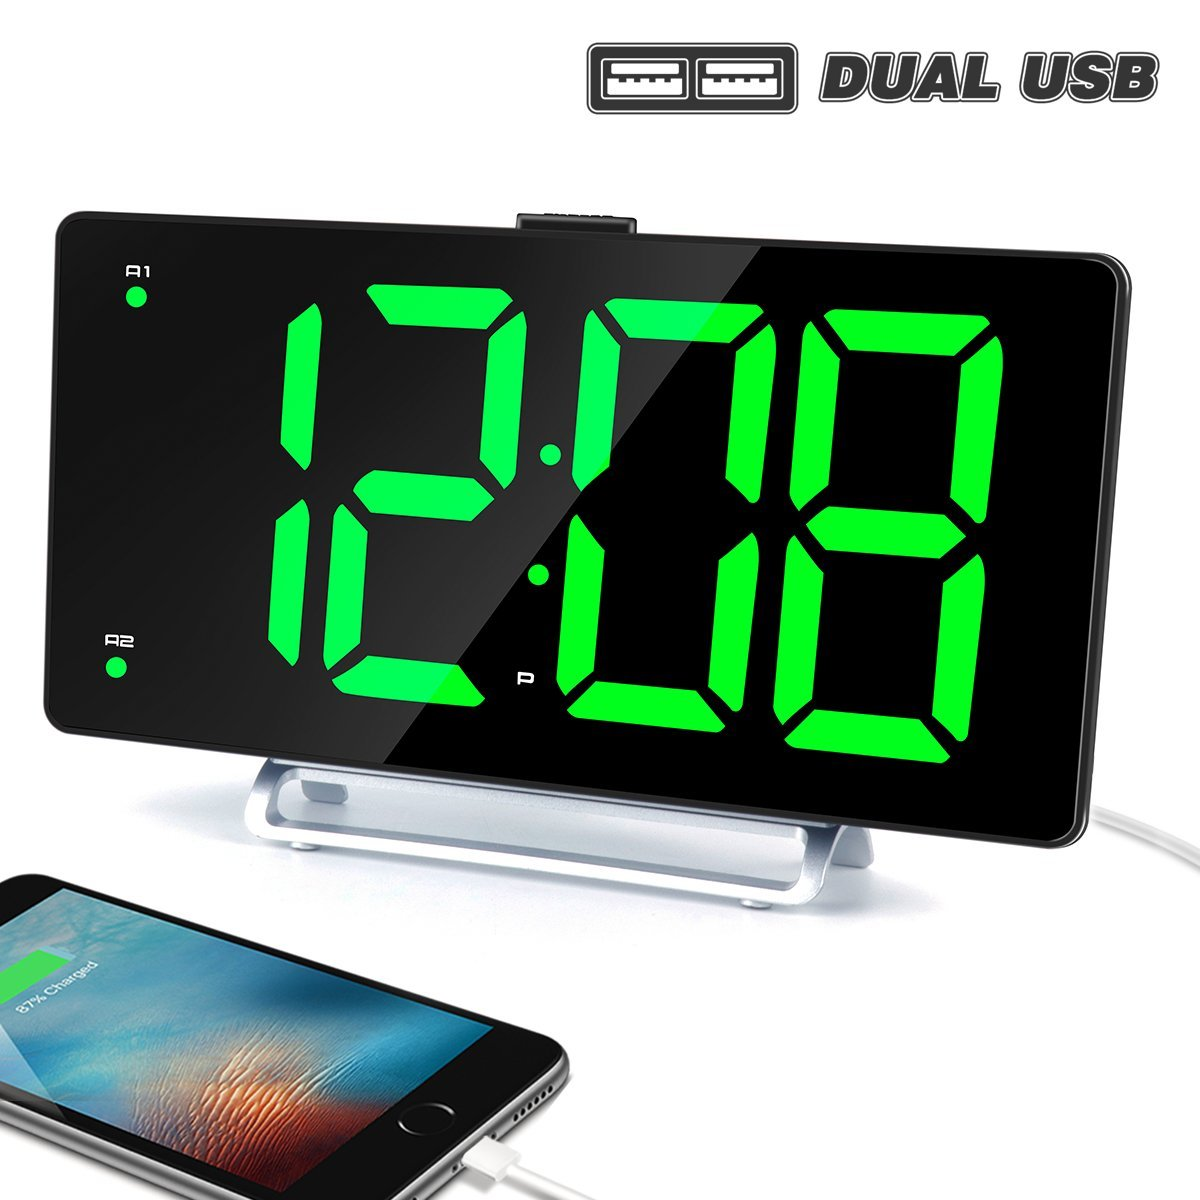 Large Alarm Clock 9''LED Digital Display Dual Alarm with USB Charger Port 0-100 Dimmer for Seniors Simple Bedside Big Number Green Alarm Clocks for Bedrooms by K-star